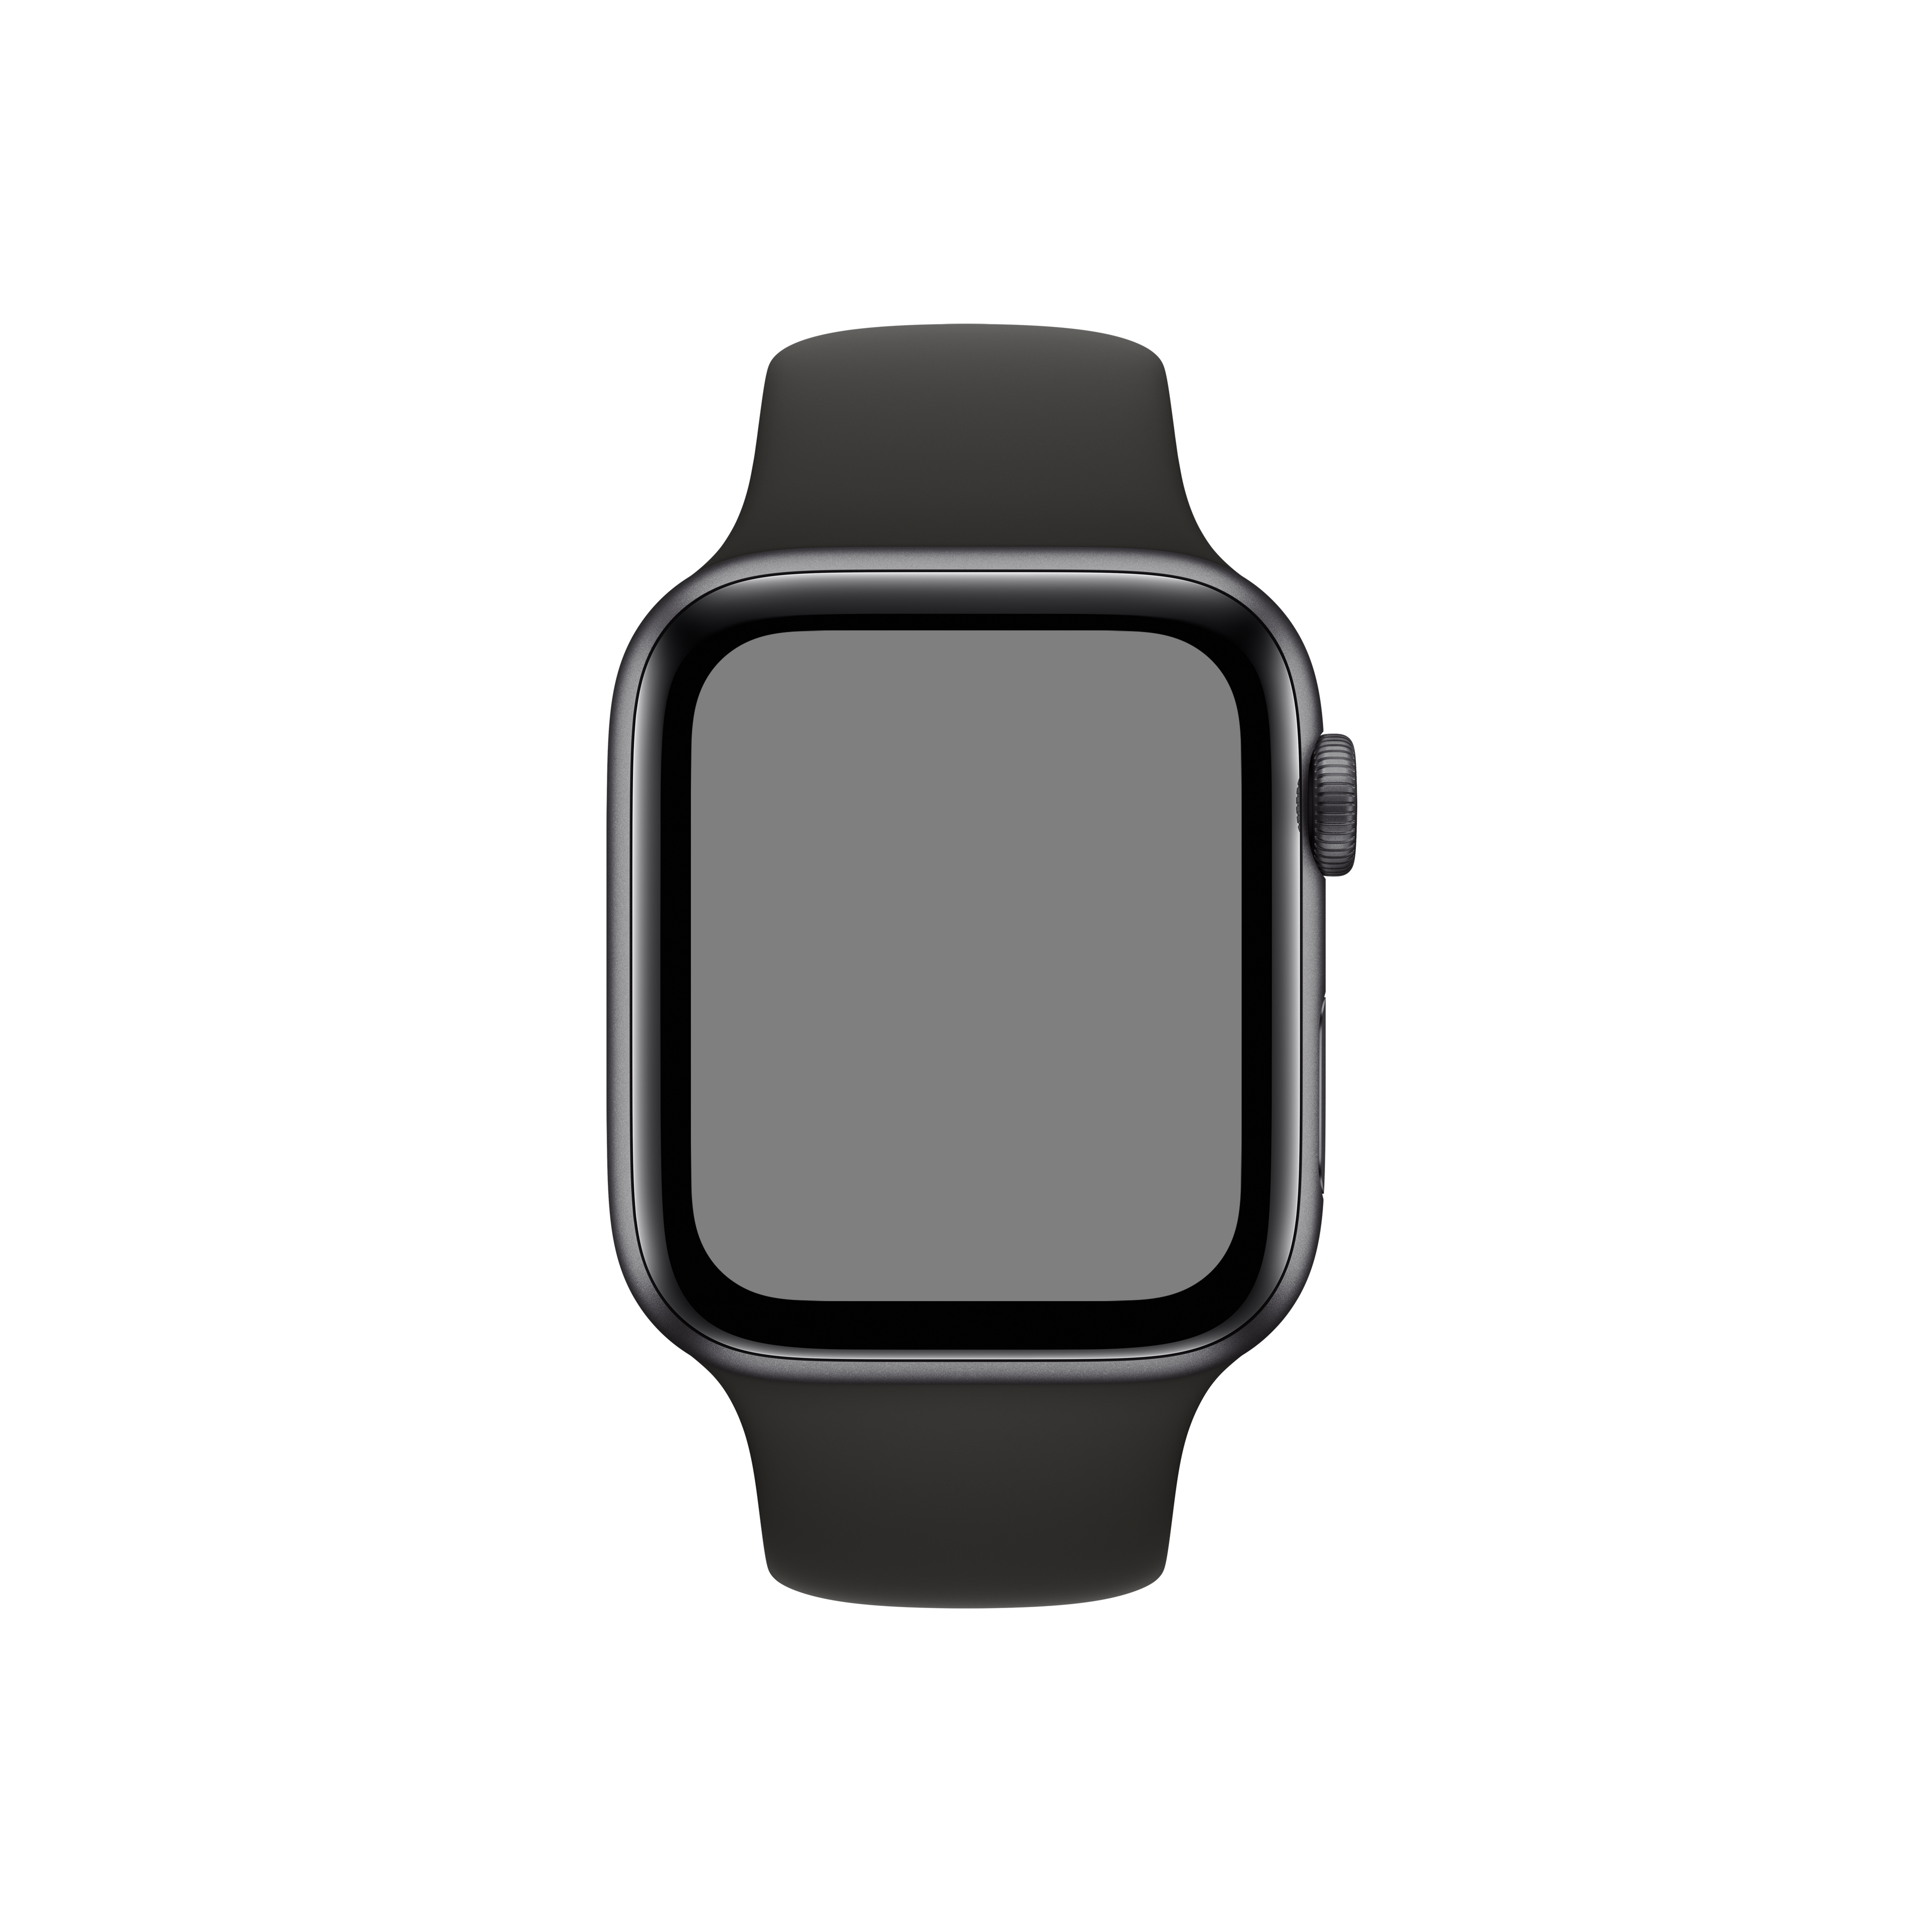 static/images/watch@3x.png